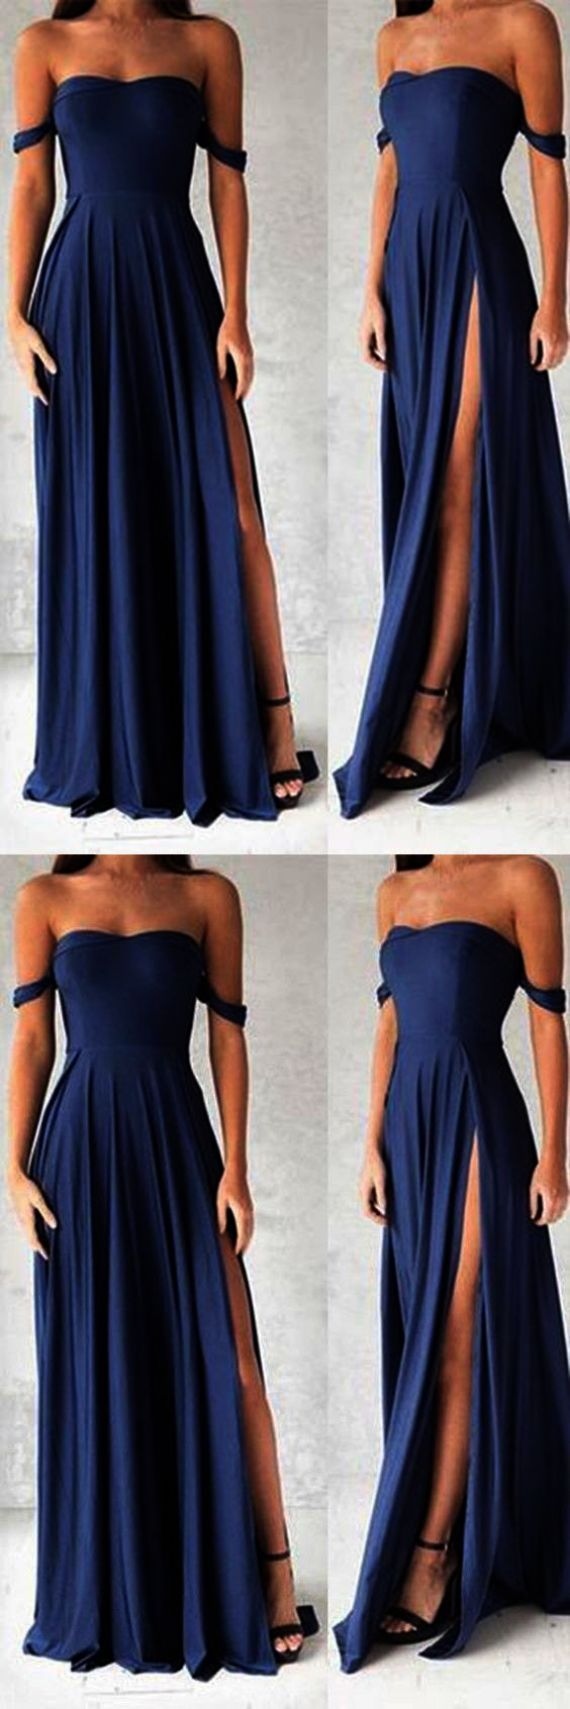 Check out what i discoveredpetite prom dresses macyus d prom